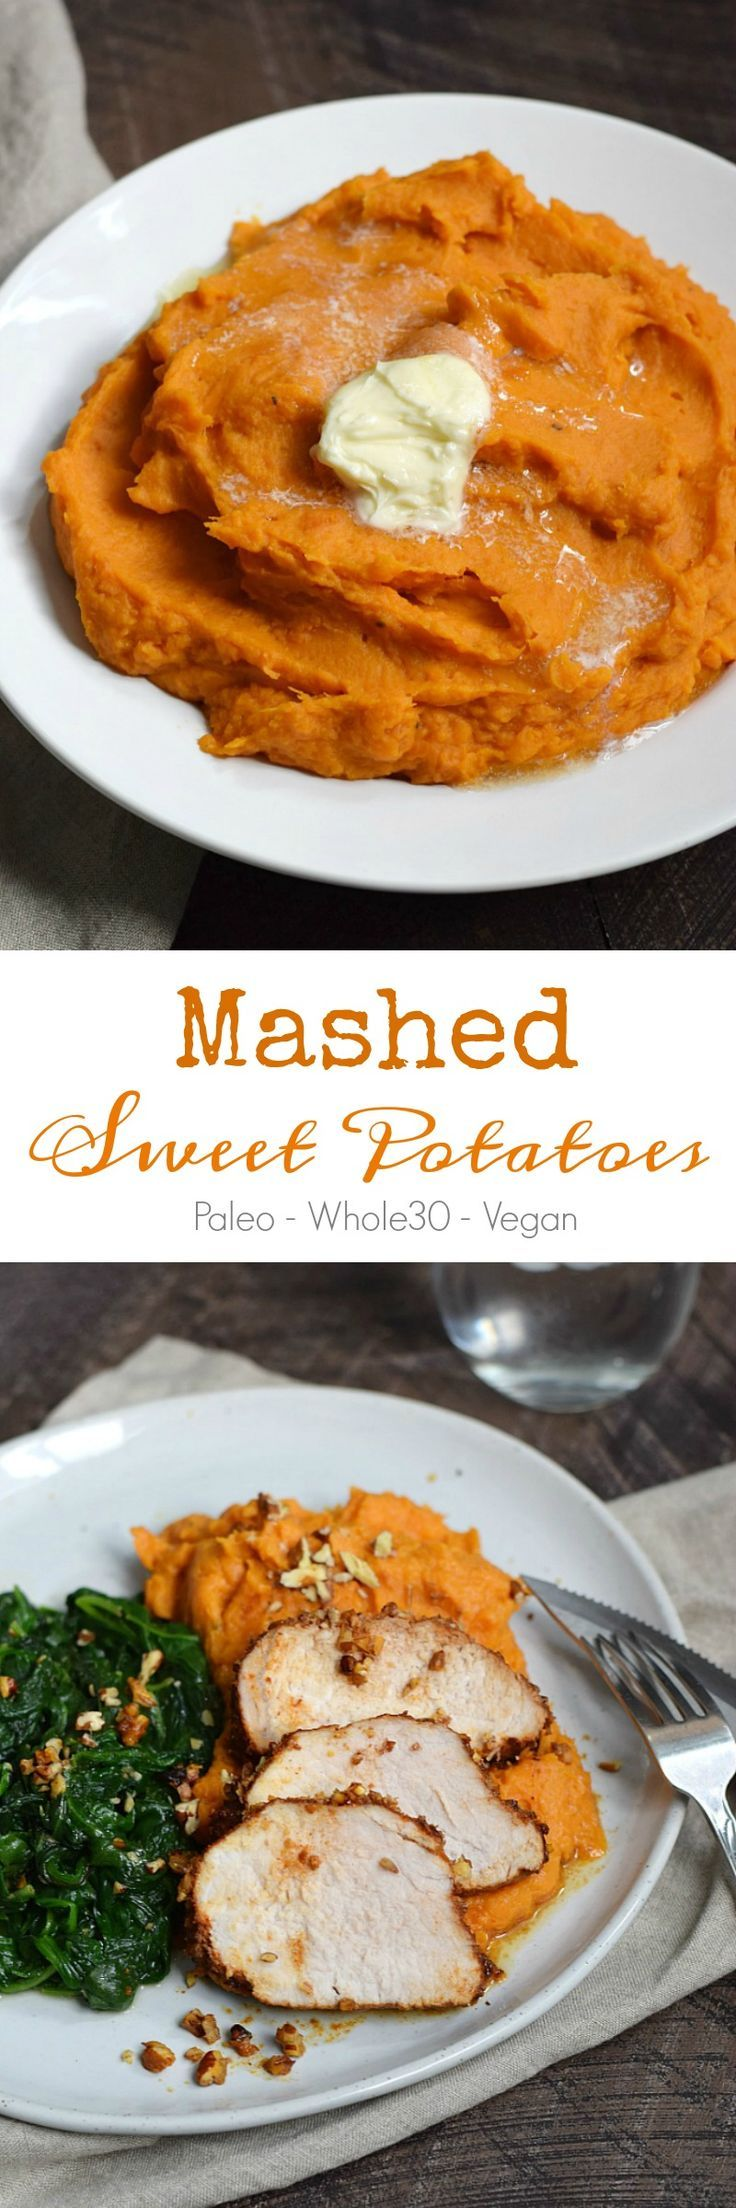 Mashed Sweet Potatoes are the perfect go-to side dish that goes perfectly with just about everything, with Paleo - Whole30 - Vegan options | http://cookingwithcurls.com